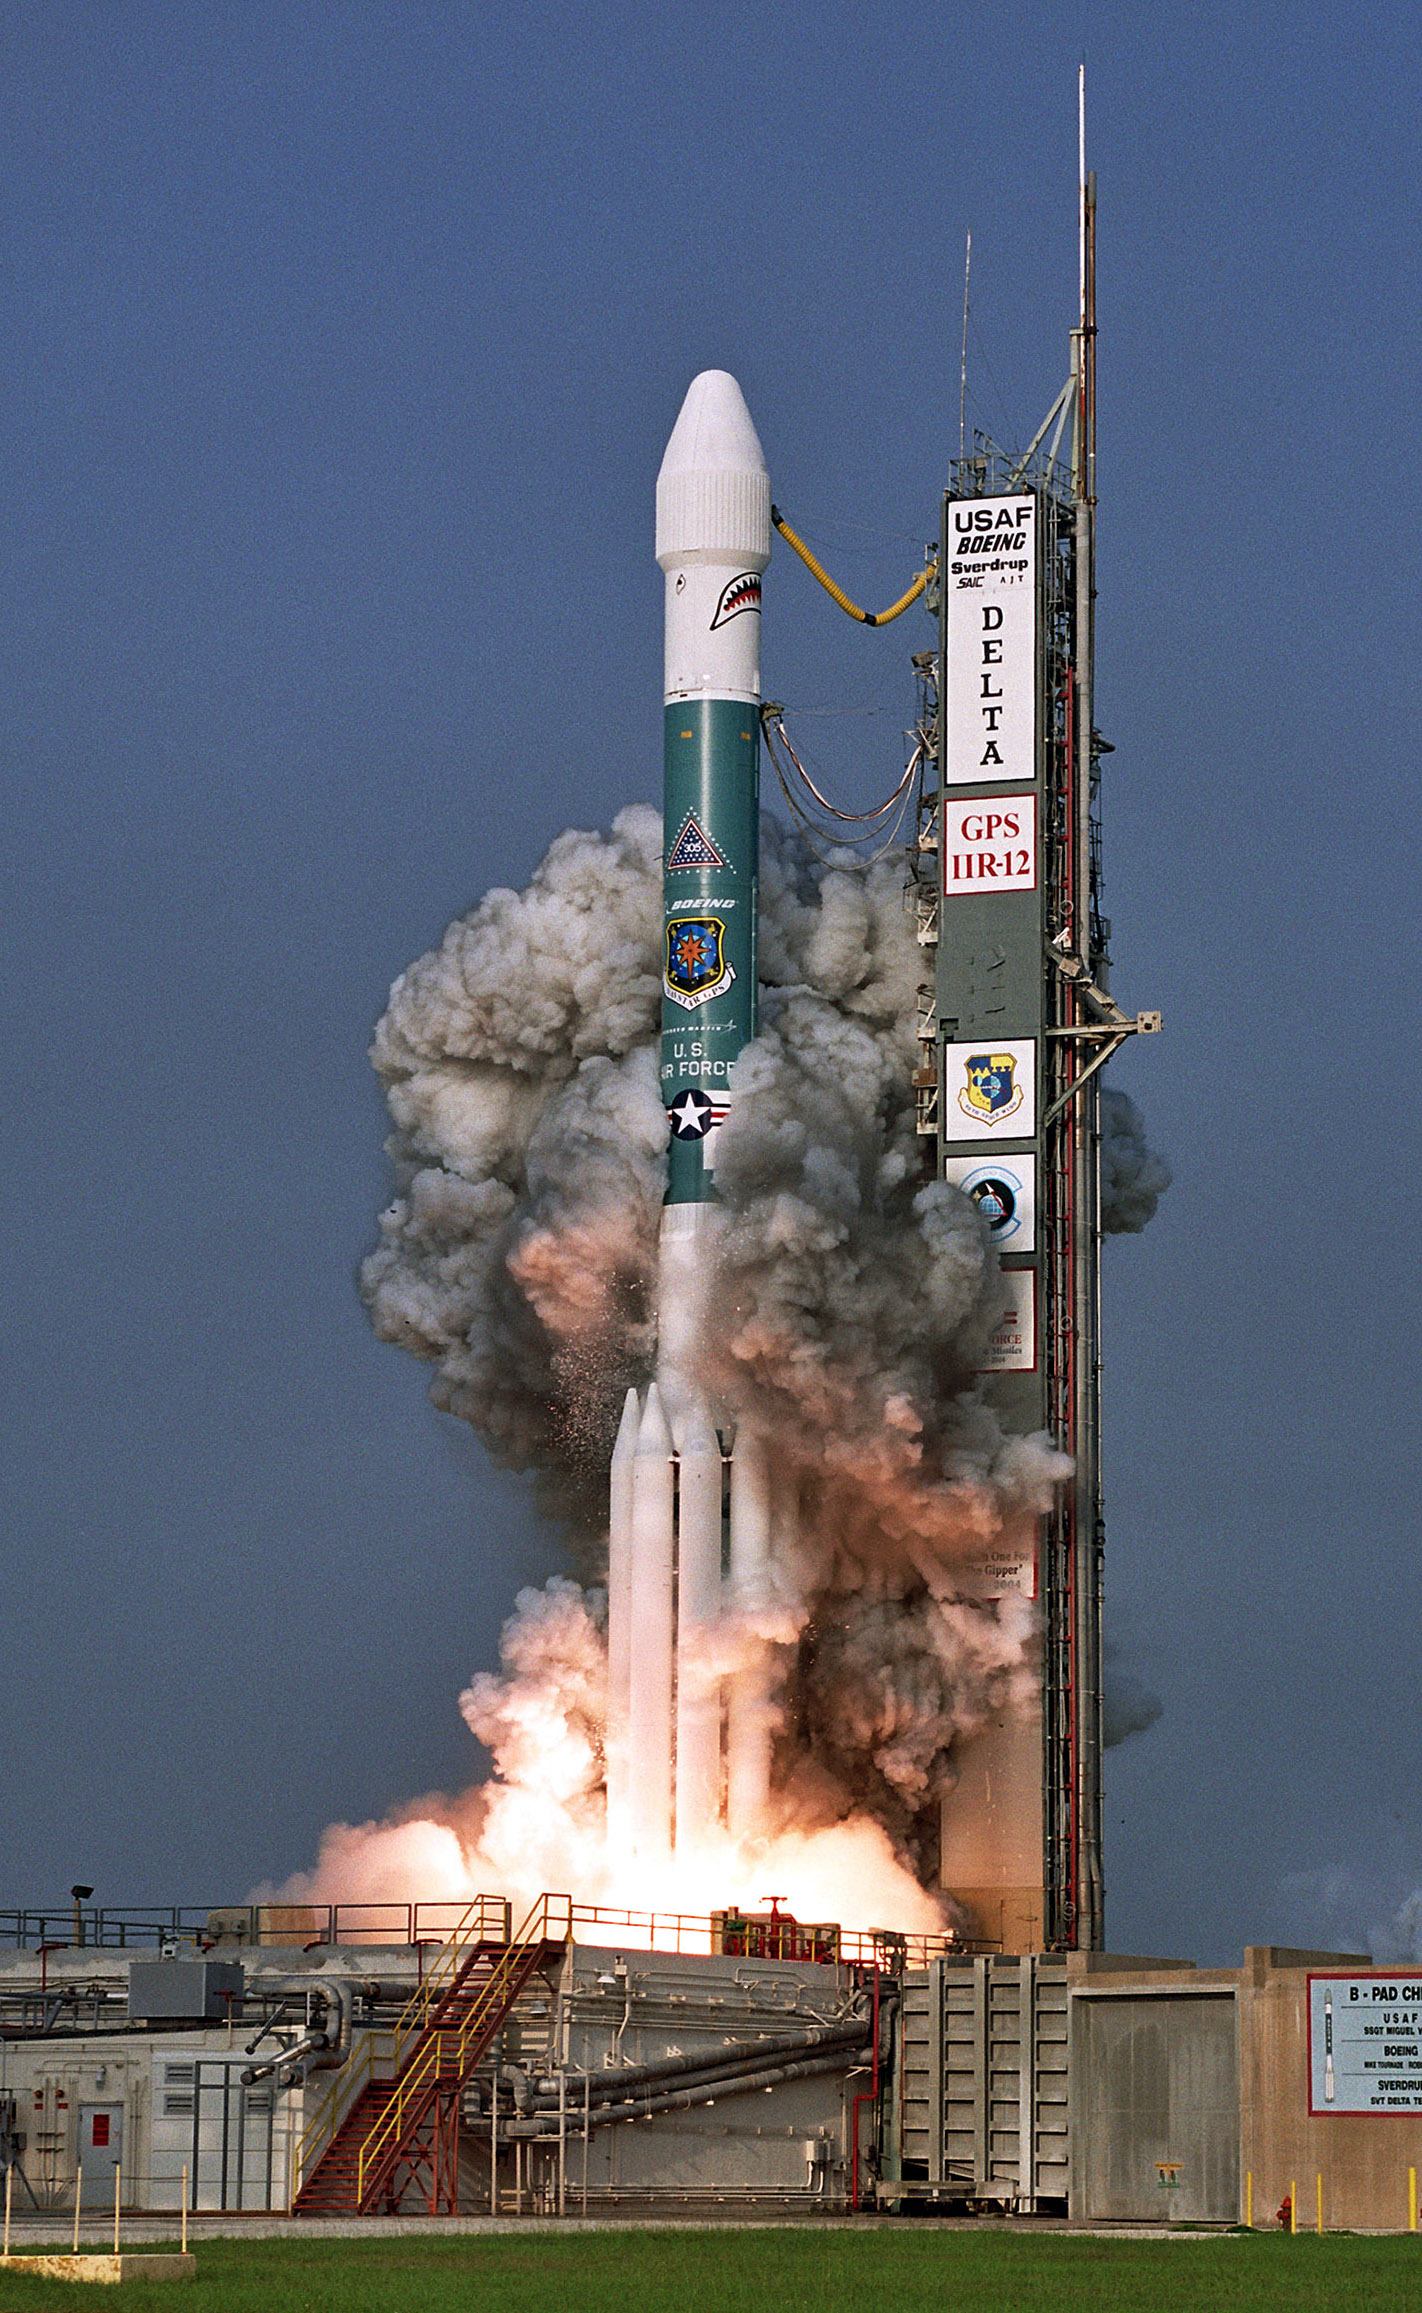 Rocket Carries Gps Satellite Into Orbit